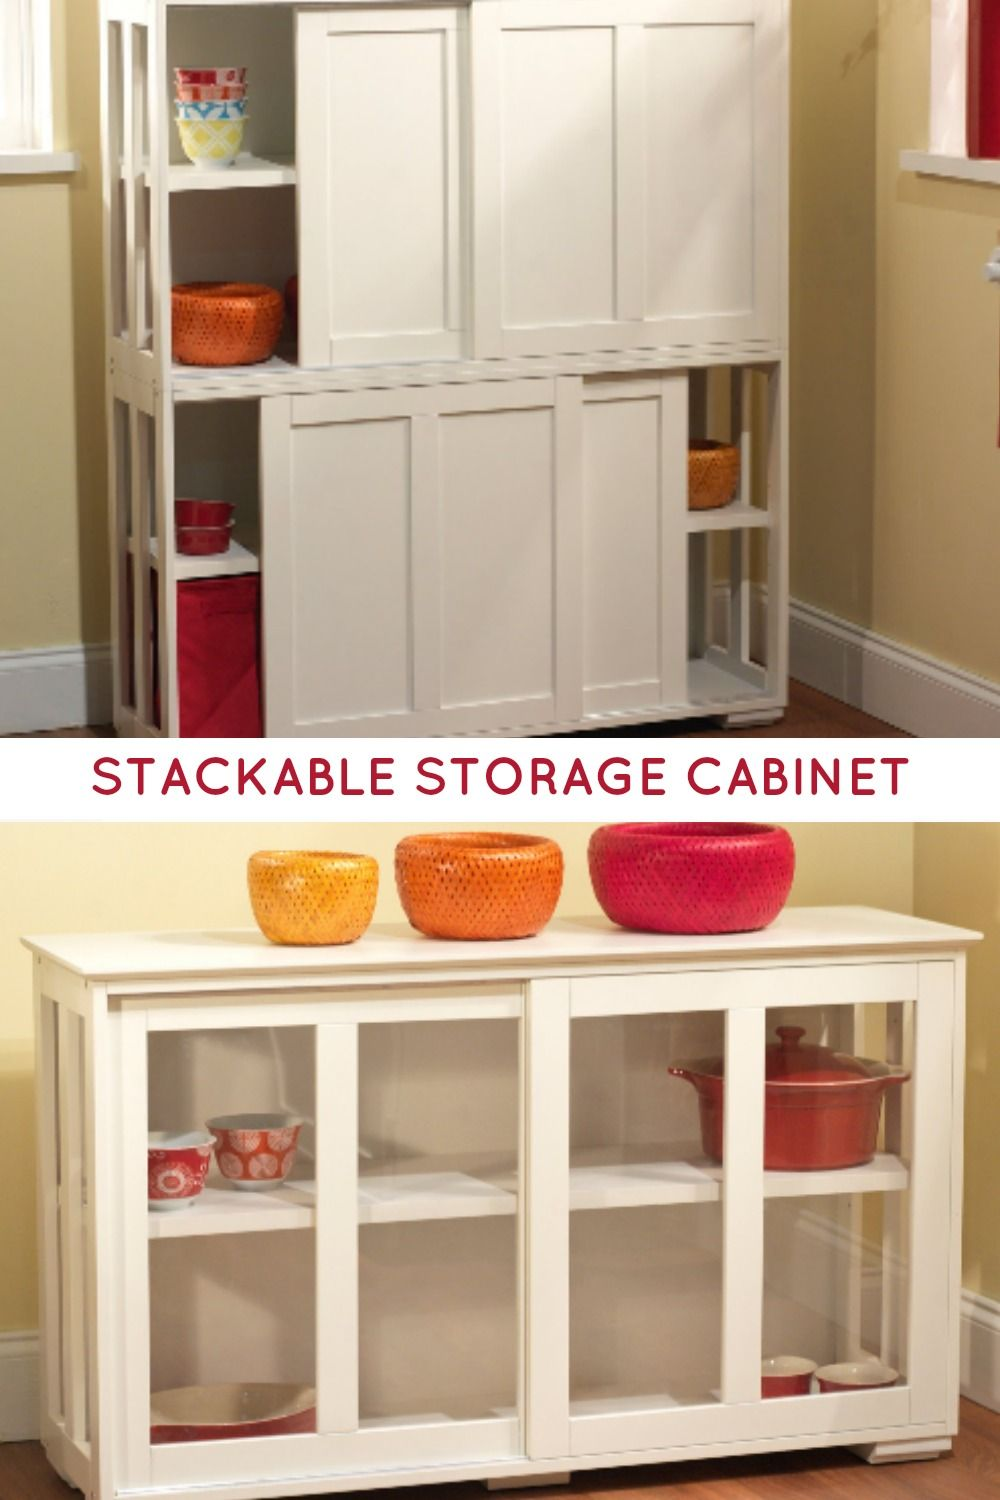 Sliding Tempered Glass Doors Stackable Storage Cabinet Can Help Keep Clutter Out Of The Way Use Alone Stackable Storage Storage Cabinet Antique White Cabinets